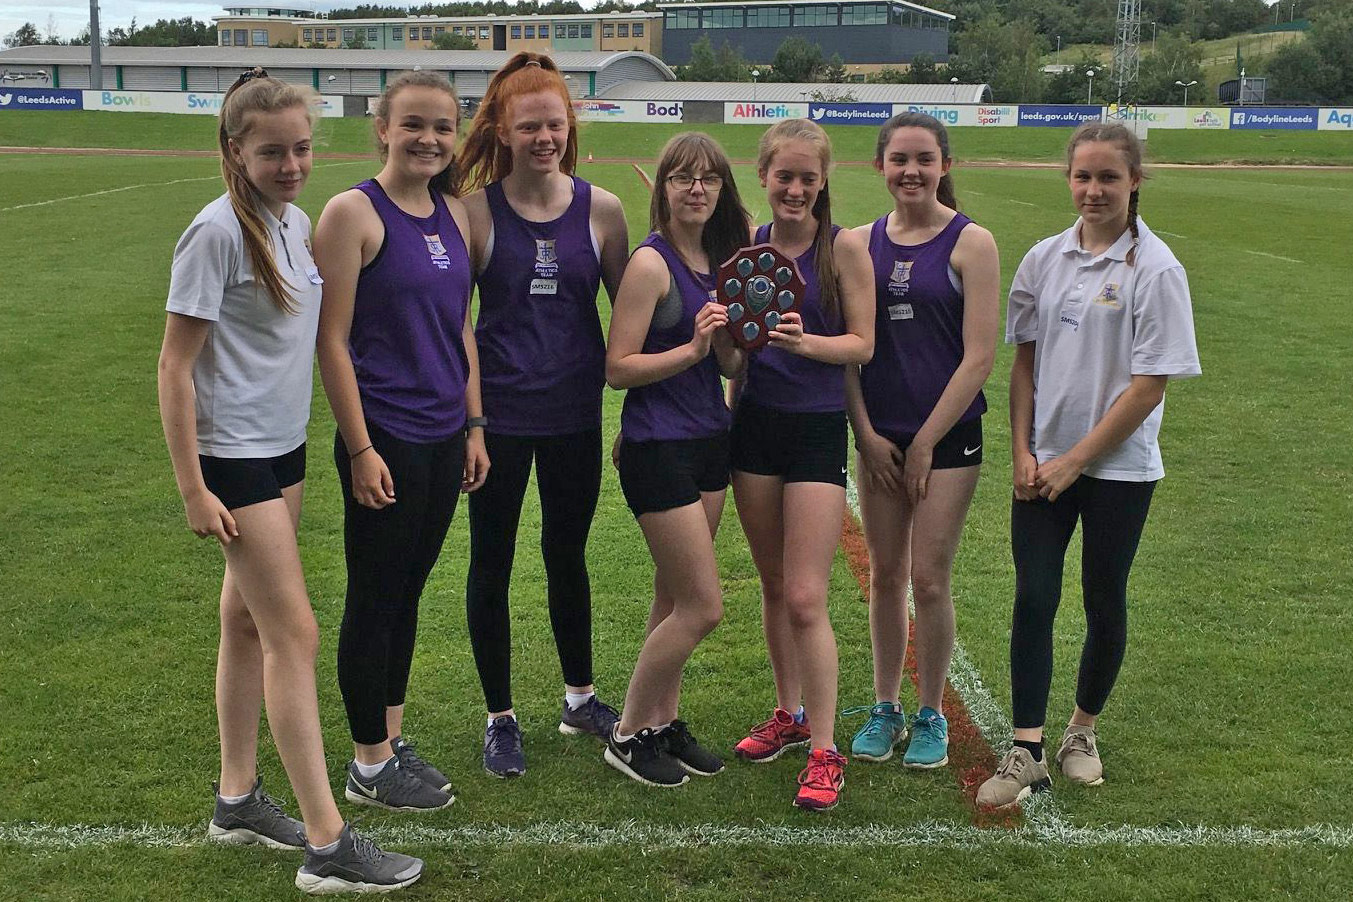 Athletics champions: a fantastic achievement!